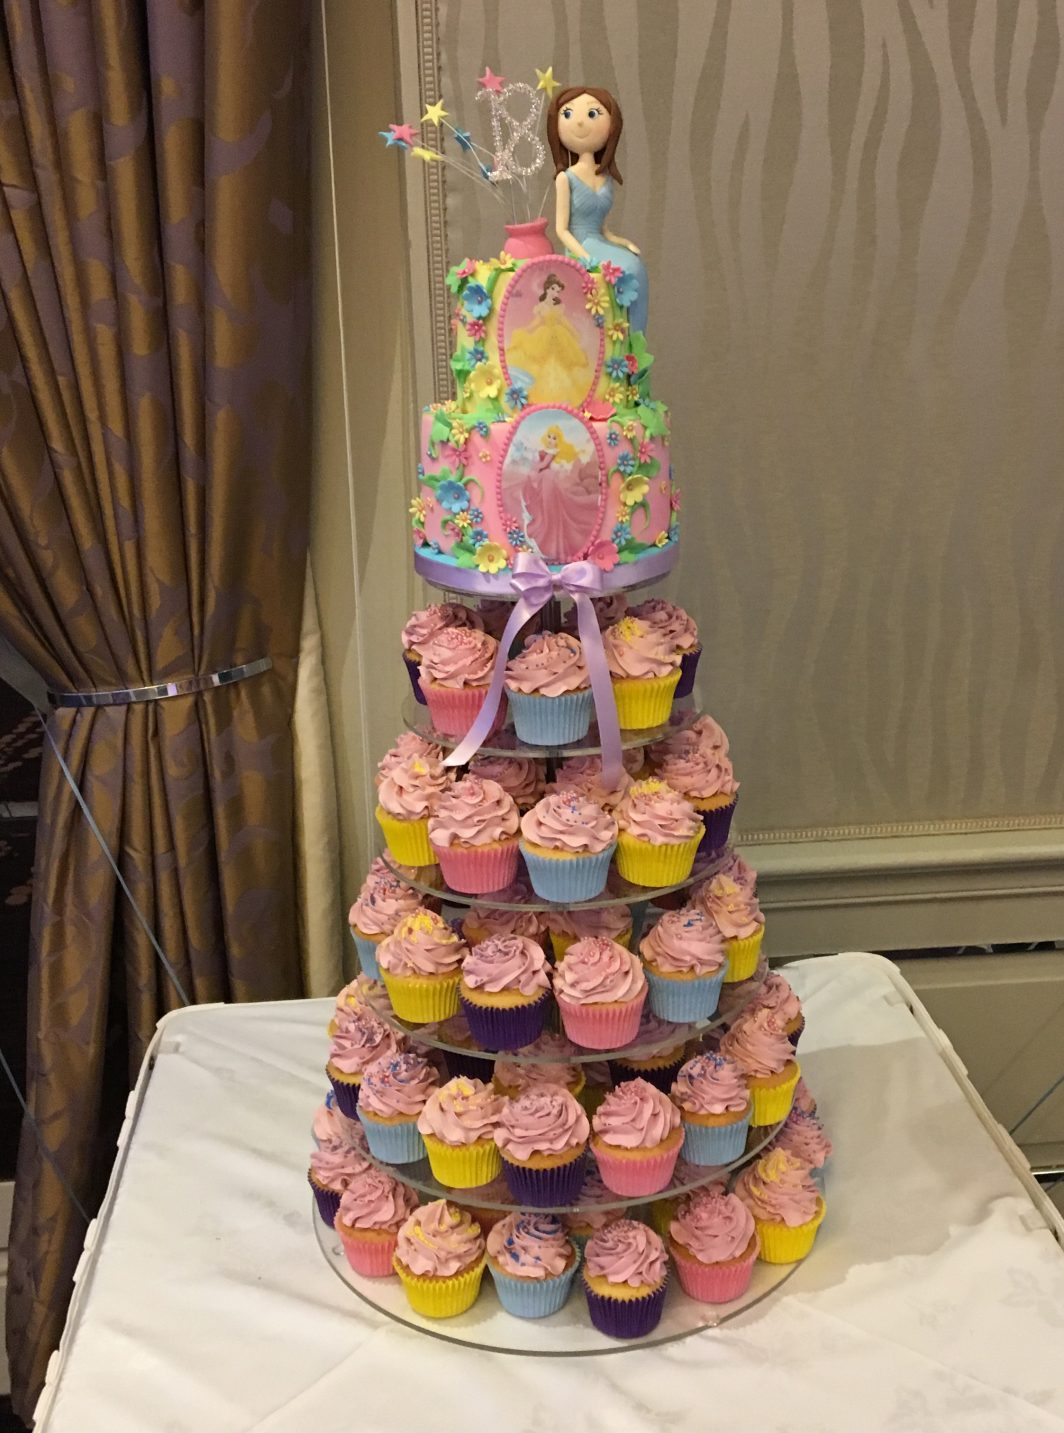 Disney Princess Cupcake Tower 18th Birthday Cake